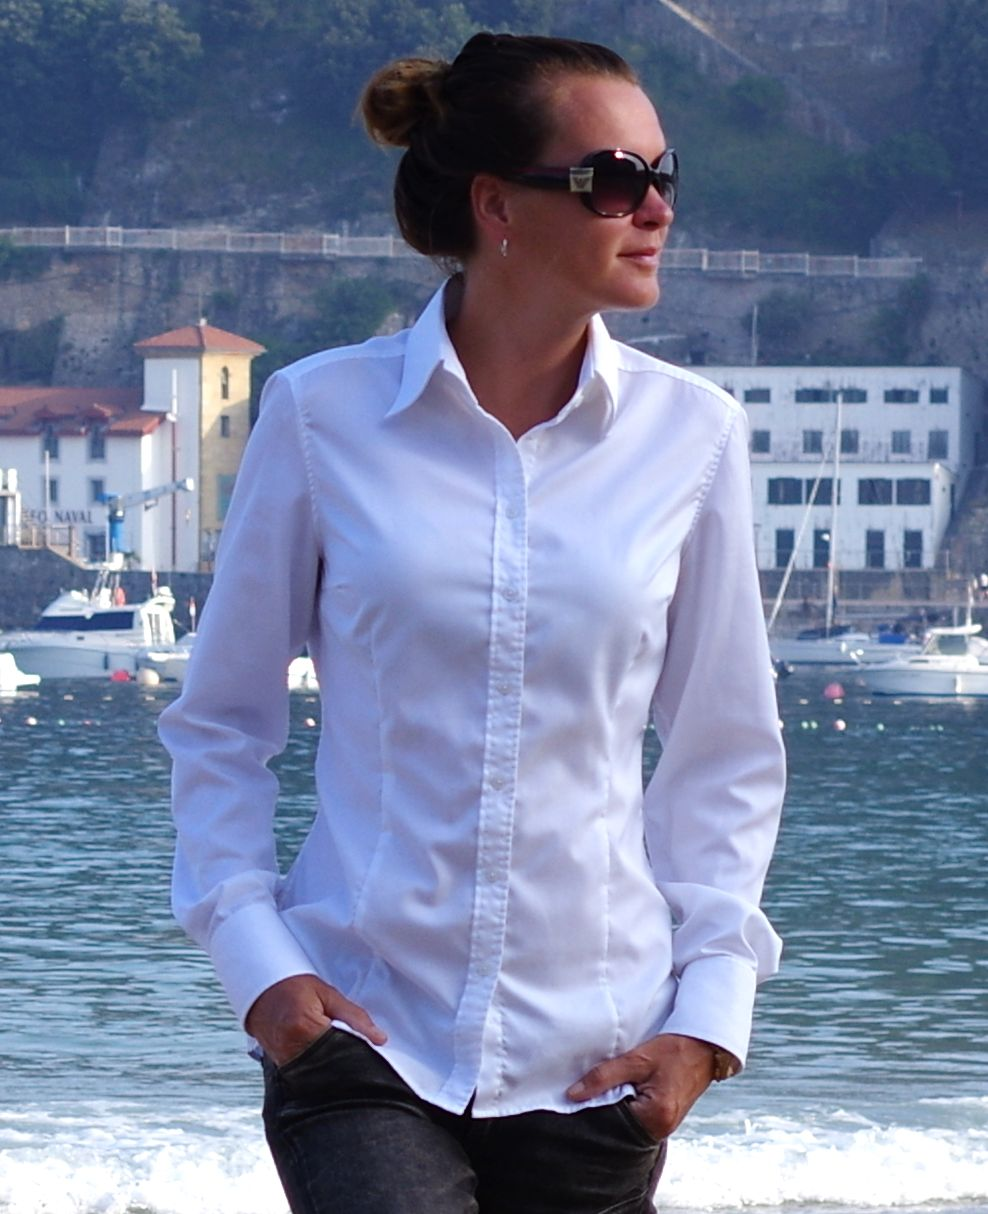 ella hopfeldt white dress shirt